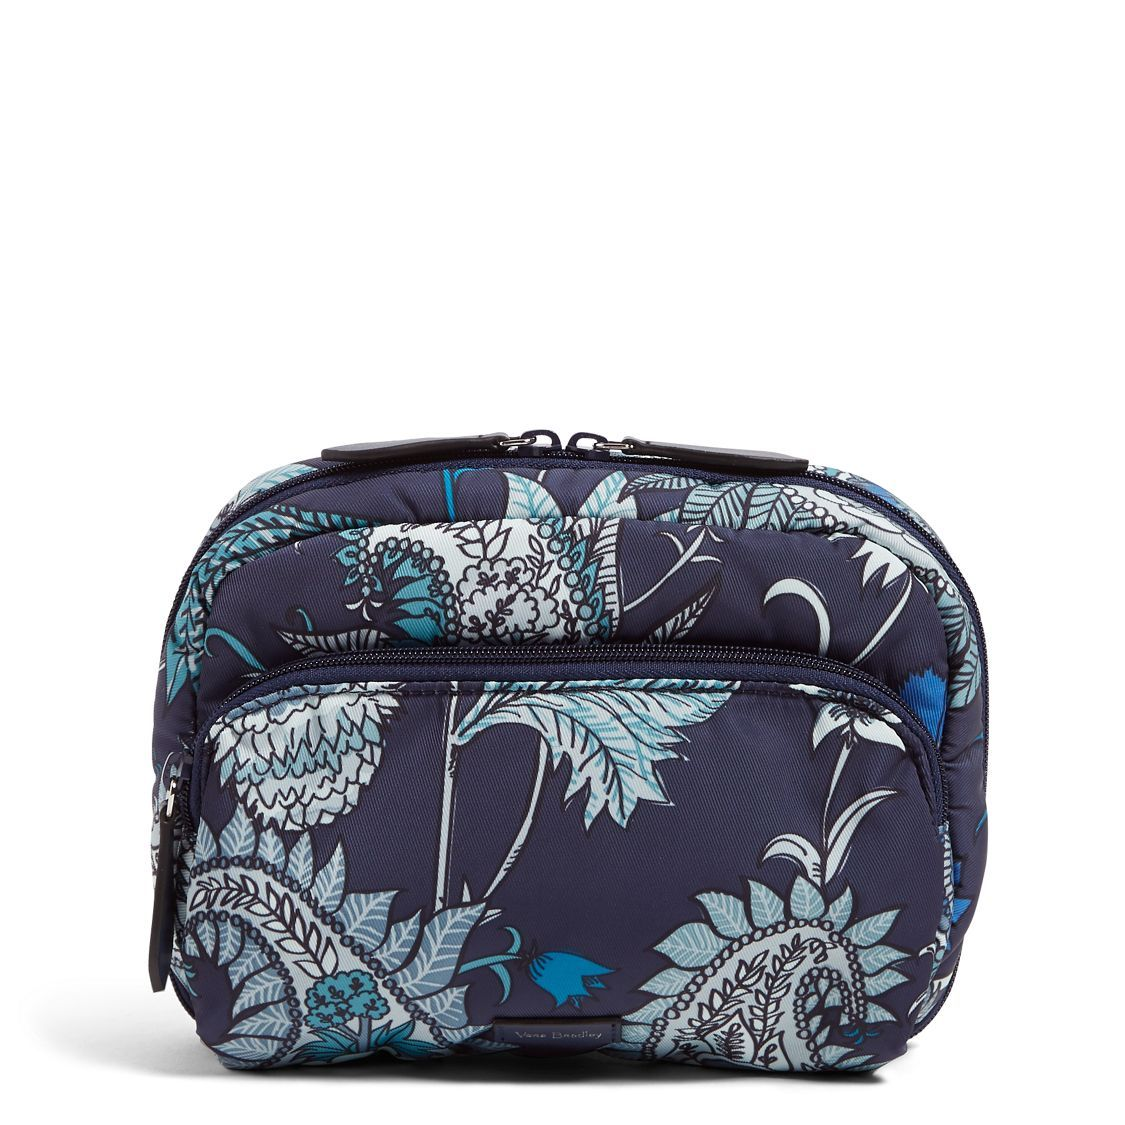 Midtown Cosmetic Bag - Cosmetic bag, Cosmetic bag organization, Makeup bag, Bags, Toiletry bag, Cosmetics - Keep your makeup organized at home and on the go with our Midtown Cosmetic bag  Who says a toiletry bag can't be charming and functional  Buy one now!